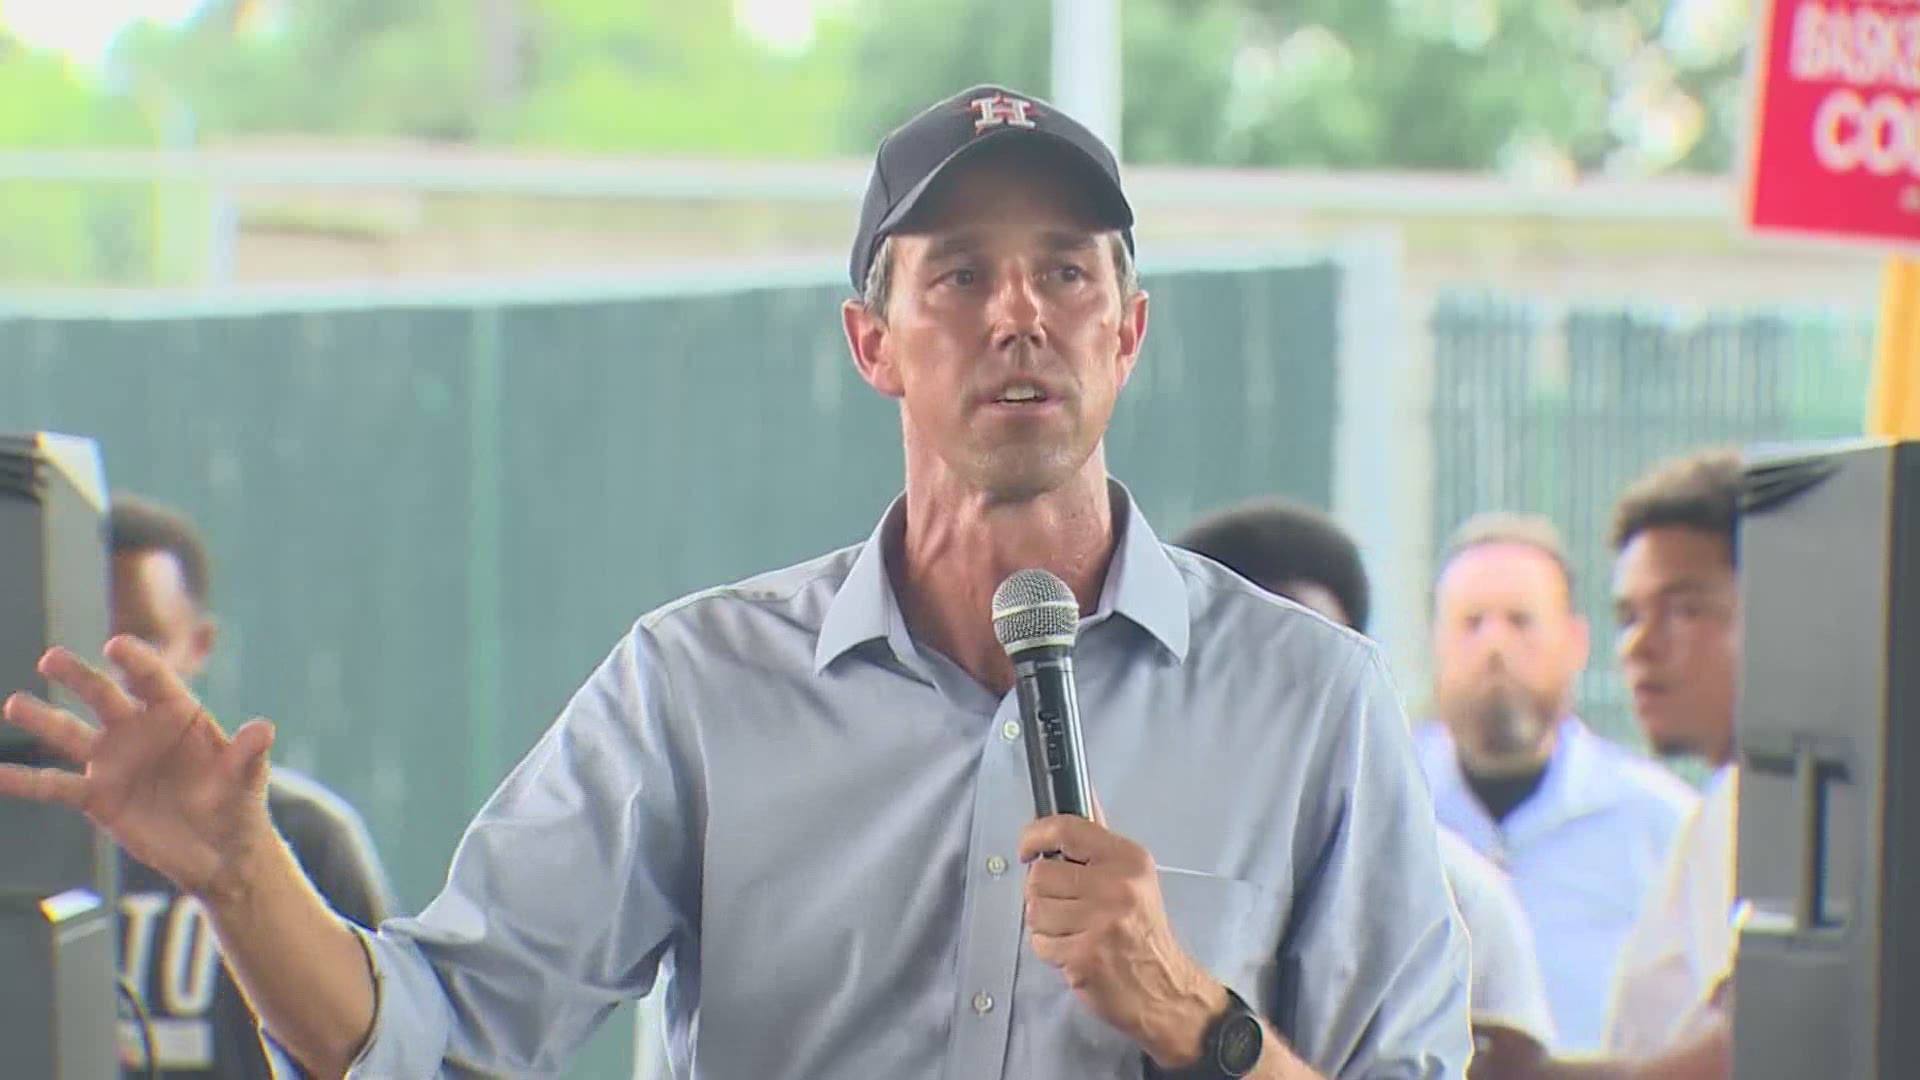 Beto O'Rourke tours Texas again to rally action on voting rights 6